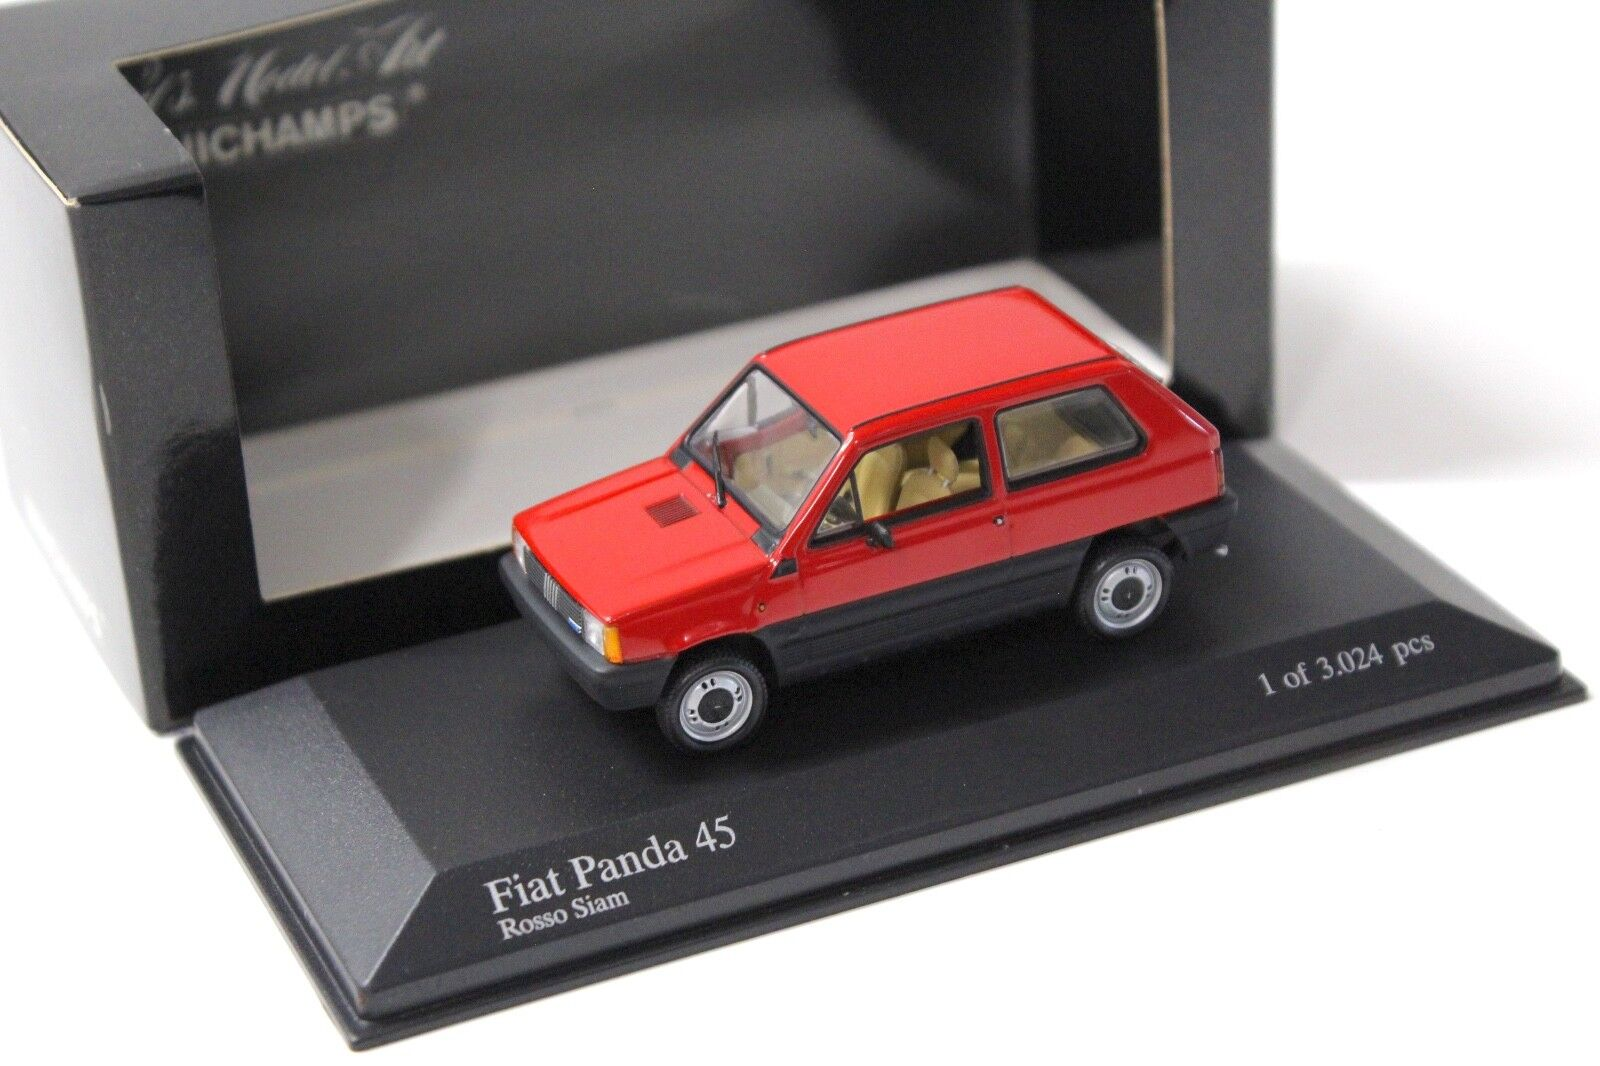 1 43 Minichamps Minichamps Minichamps Fiat Panda 45 red Siam red NEW bei PREMIUM-MODELCARS 302d6a